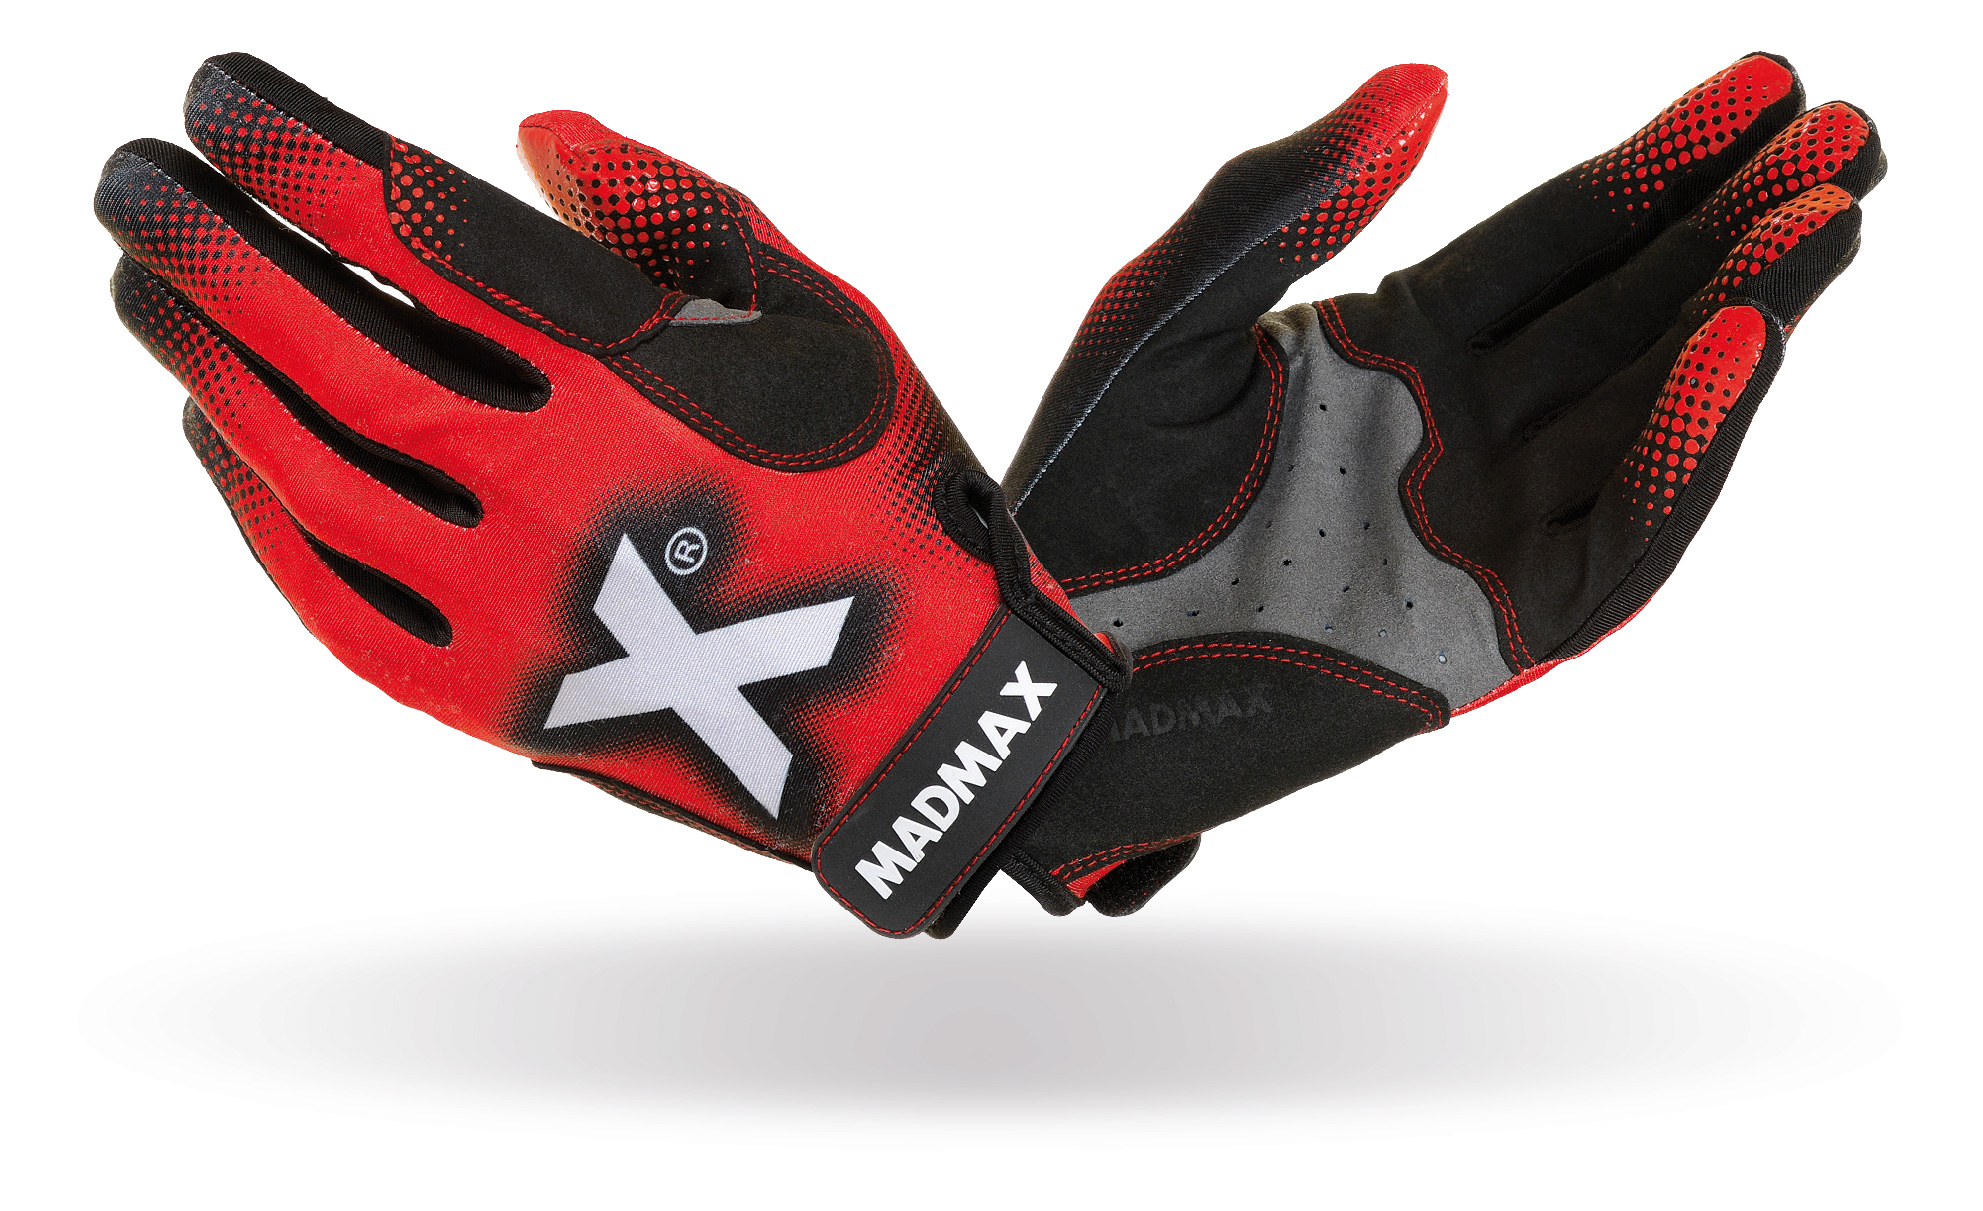 MAD MAX MXG-101 x gloves red